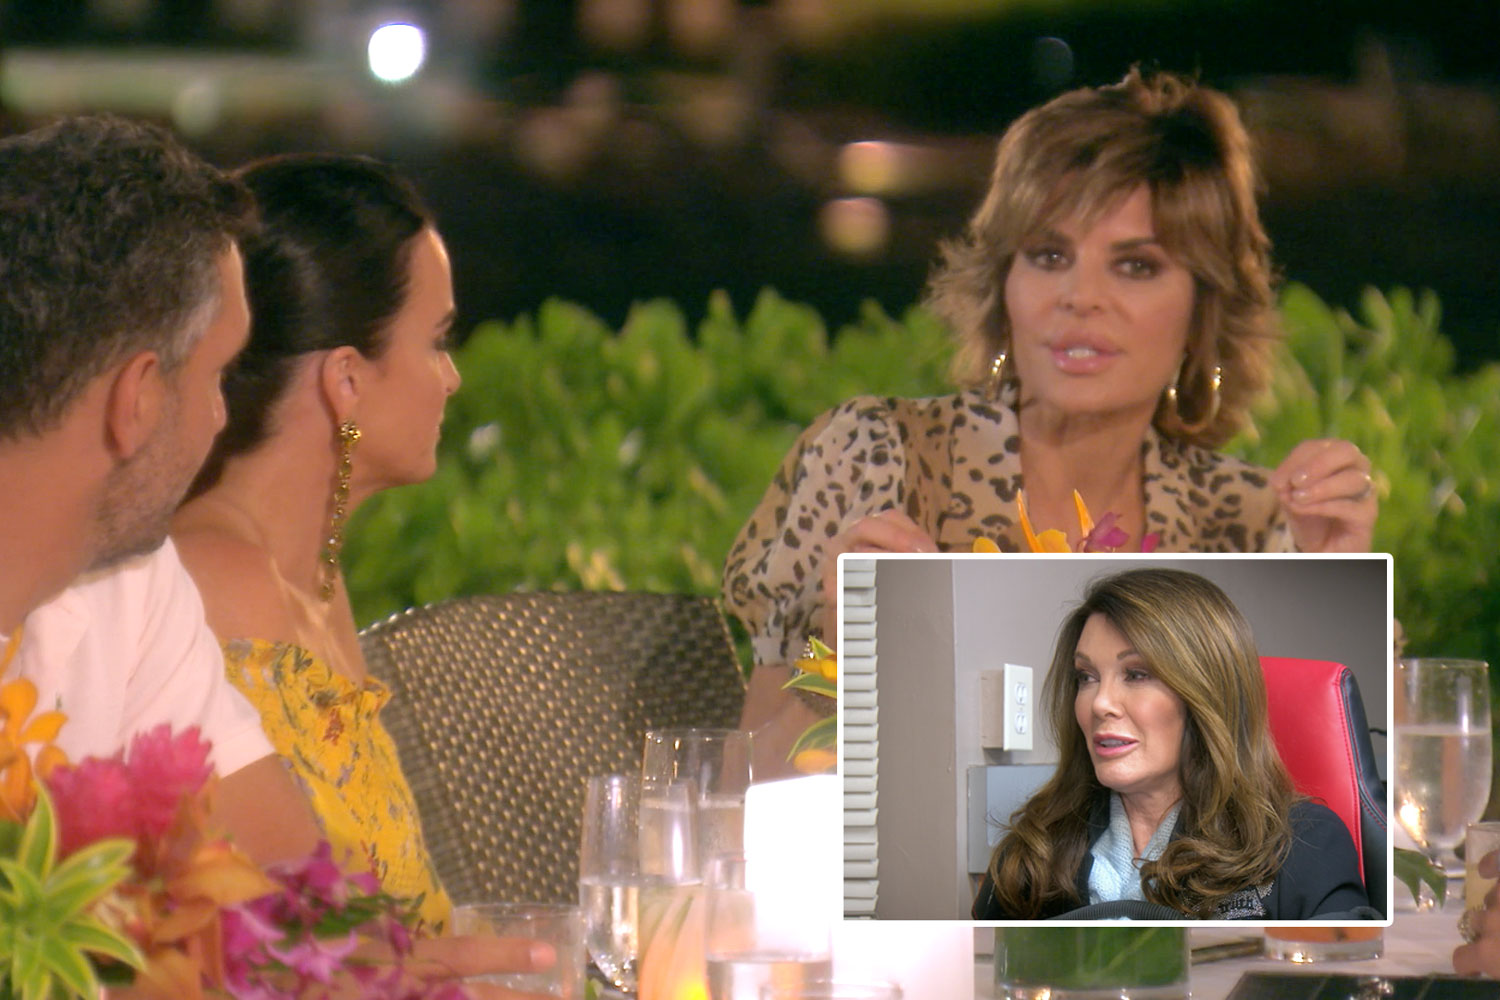 Lisa Vanderpump Takes Lie Detector Test on The Real Housewives of Beverly Hills